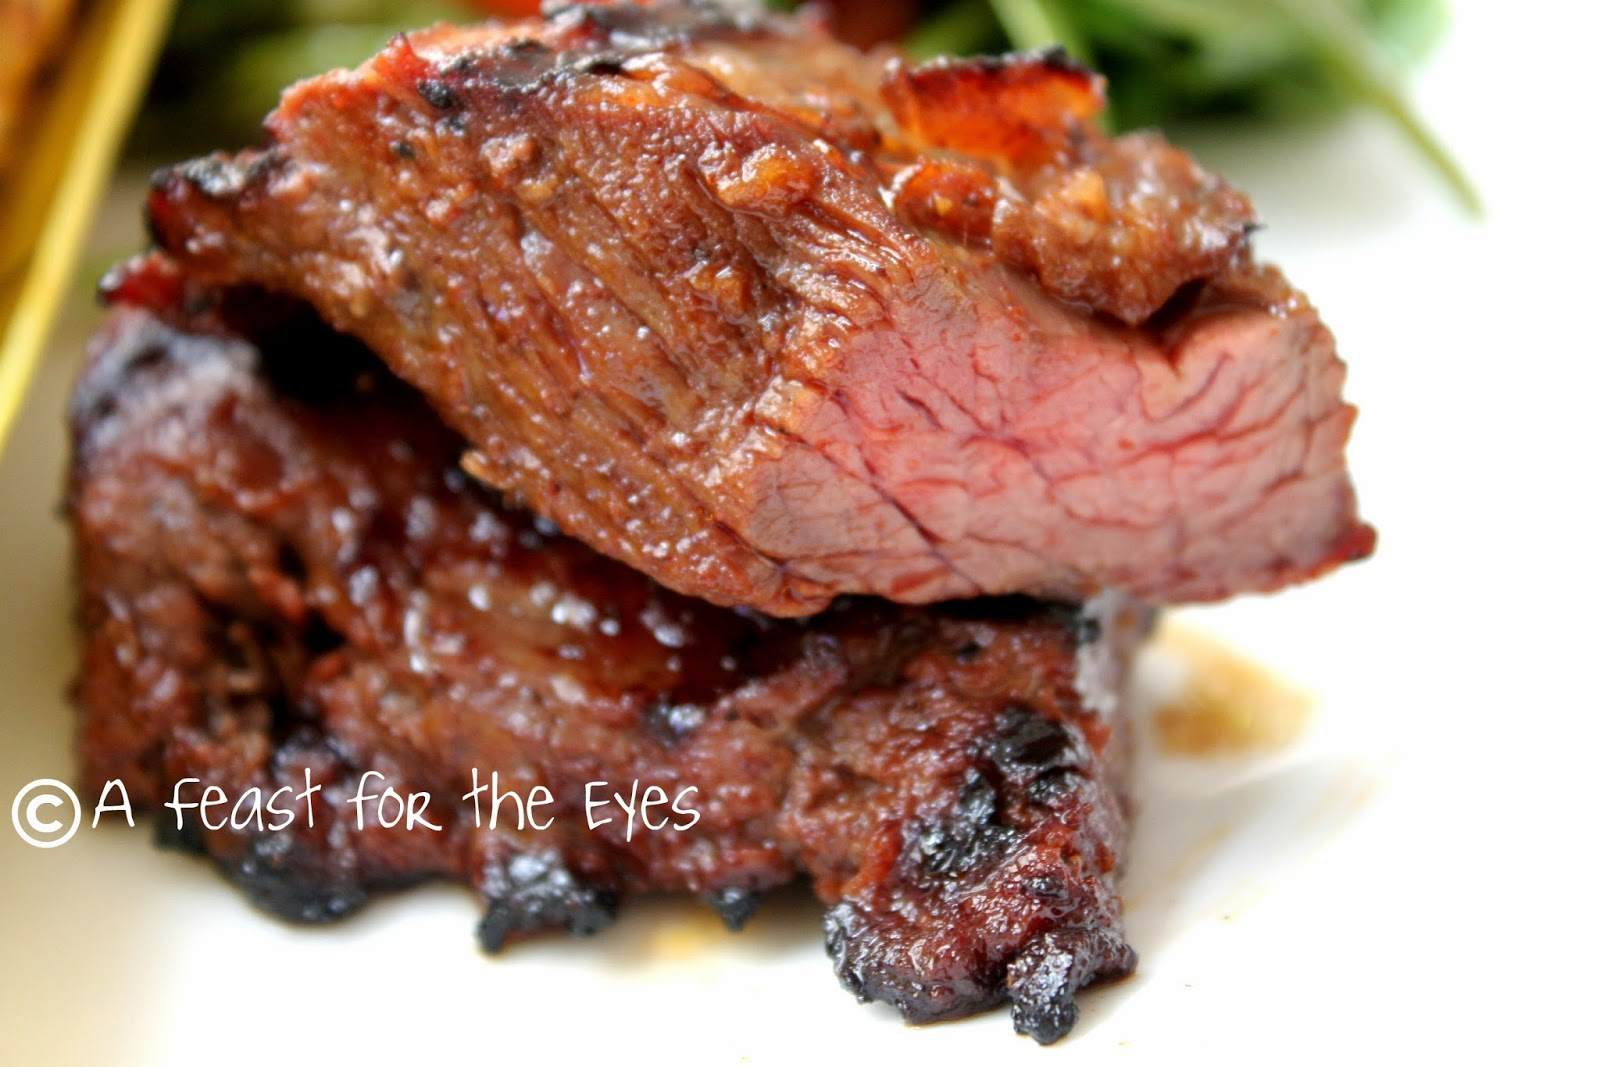 Feast for the Eyes: Grilled Steakhouse Steak Tips